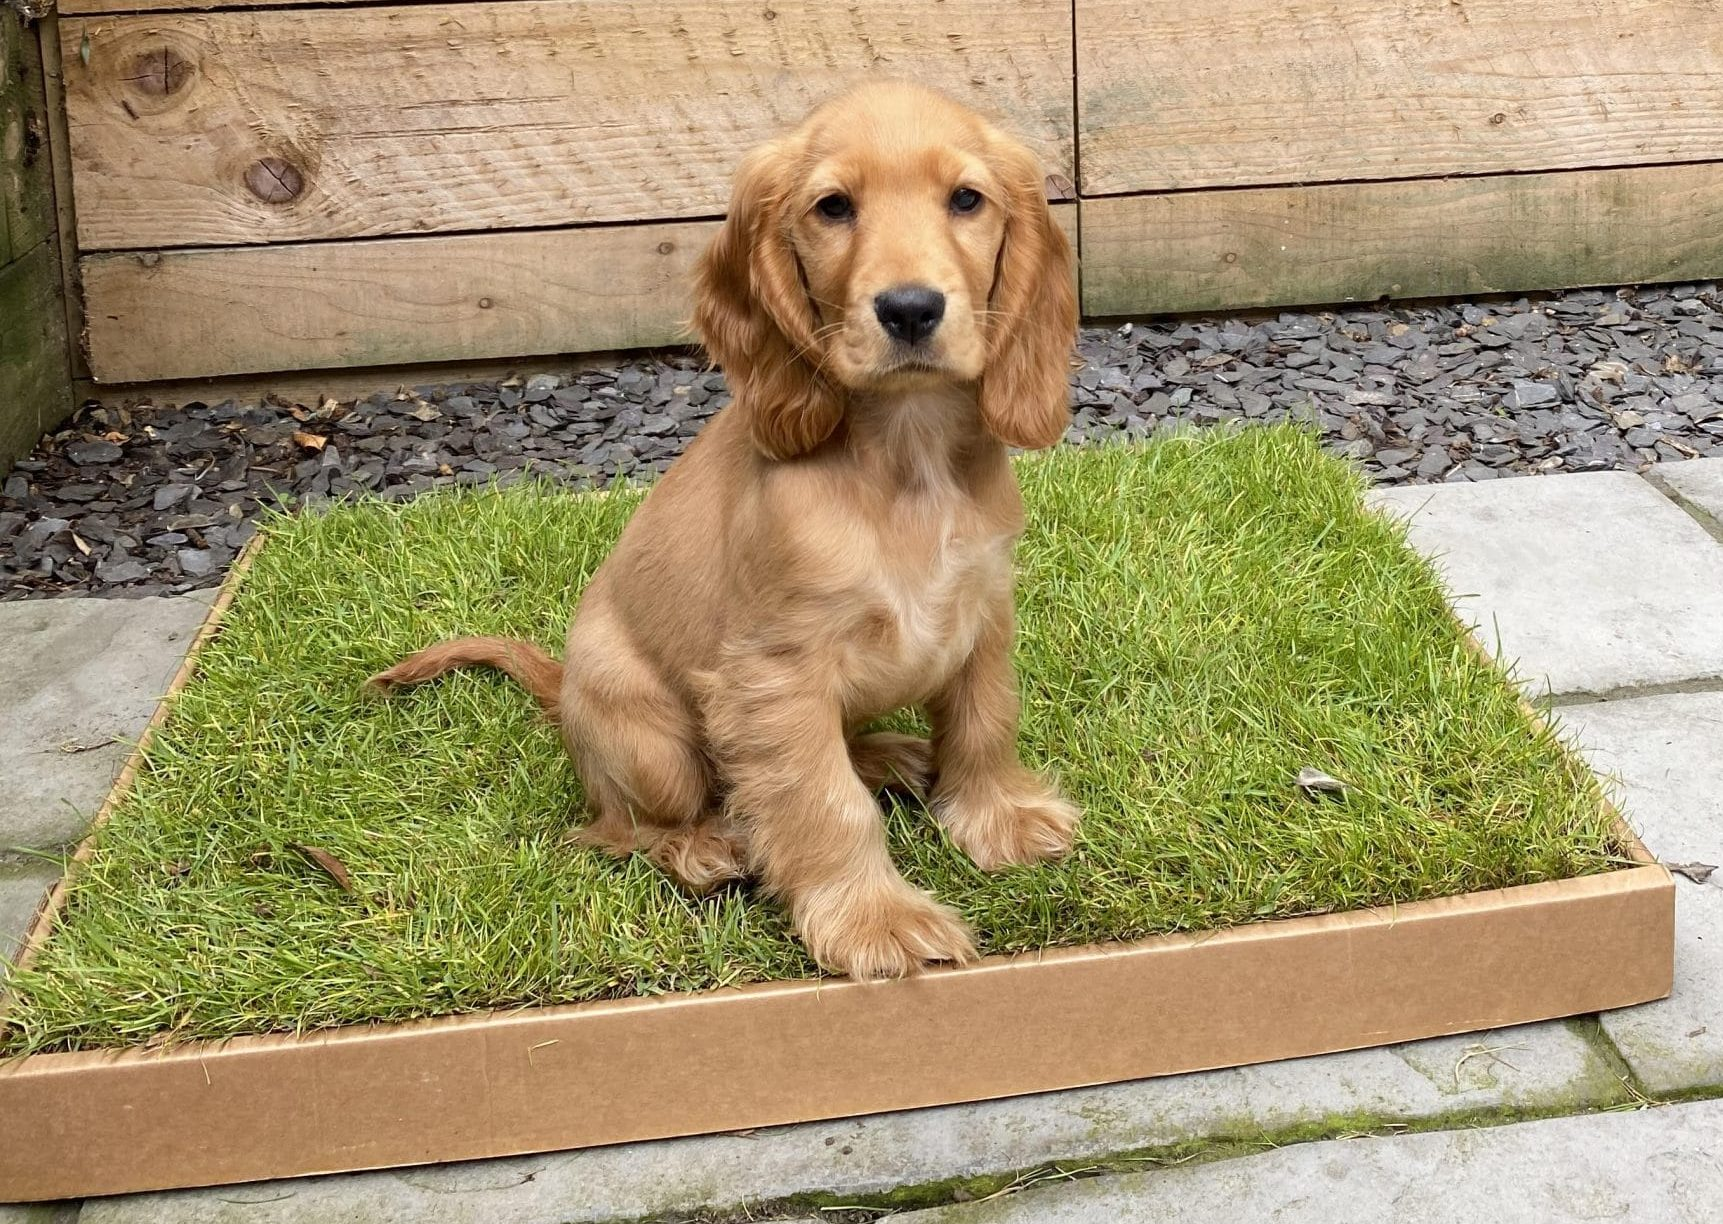 Puppy sitting on their grass-dog-toilet.